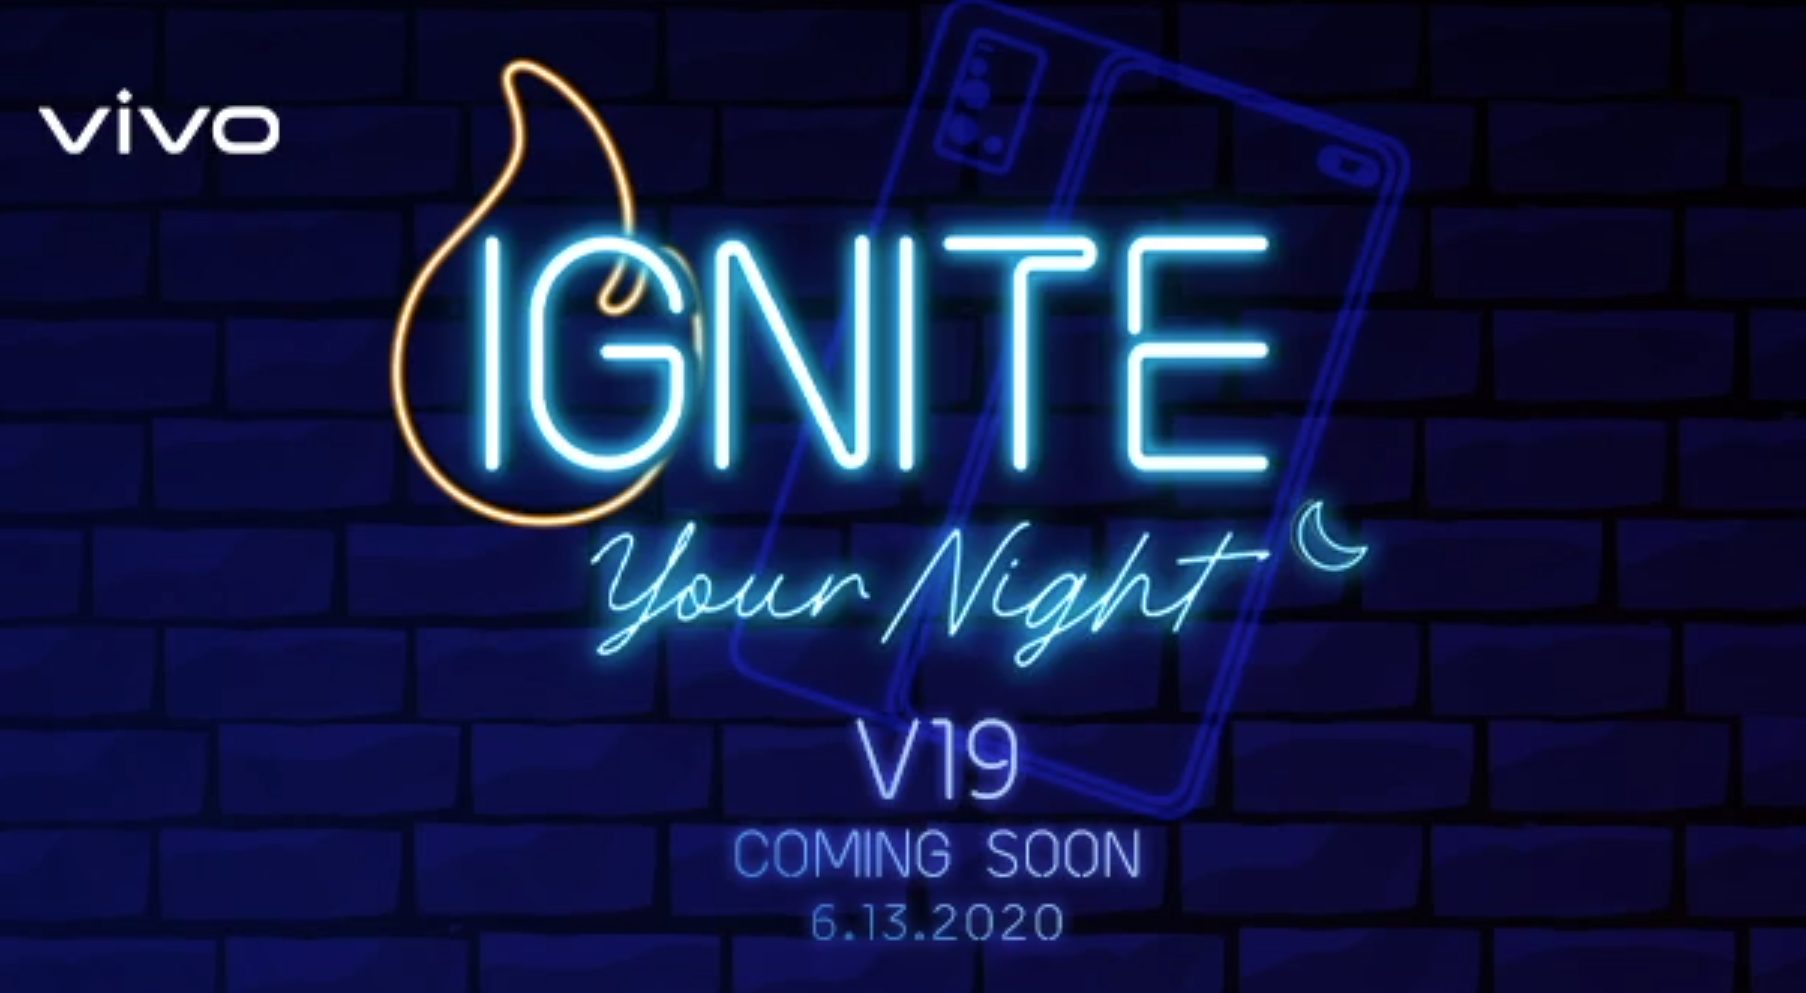 vivo-will-pick-3-winners-of-vivo-v19-during-ignite-your-night-event-featured-image